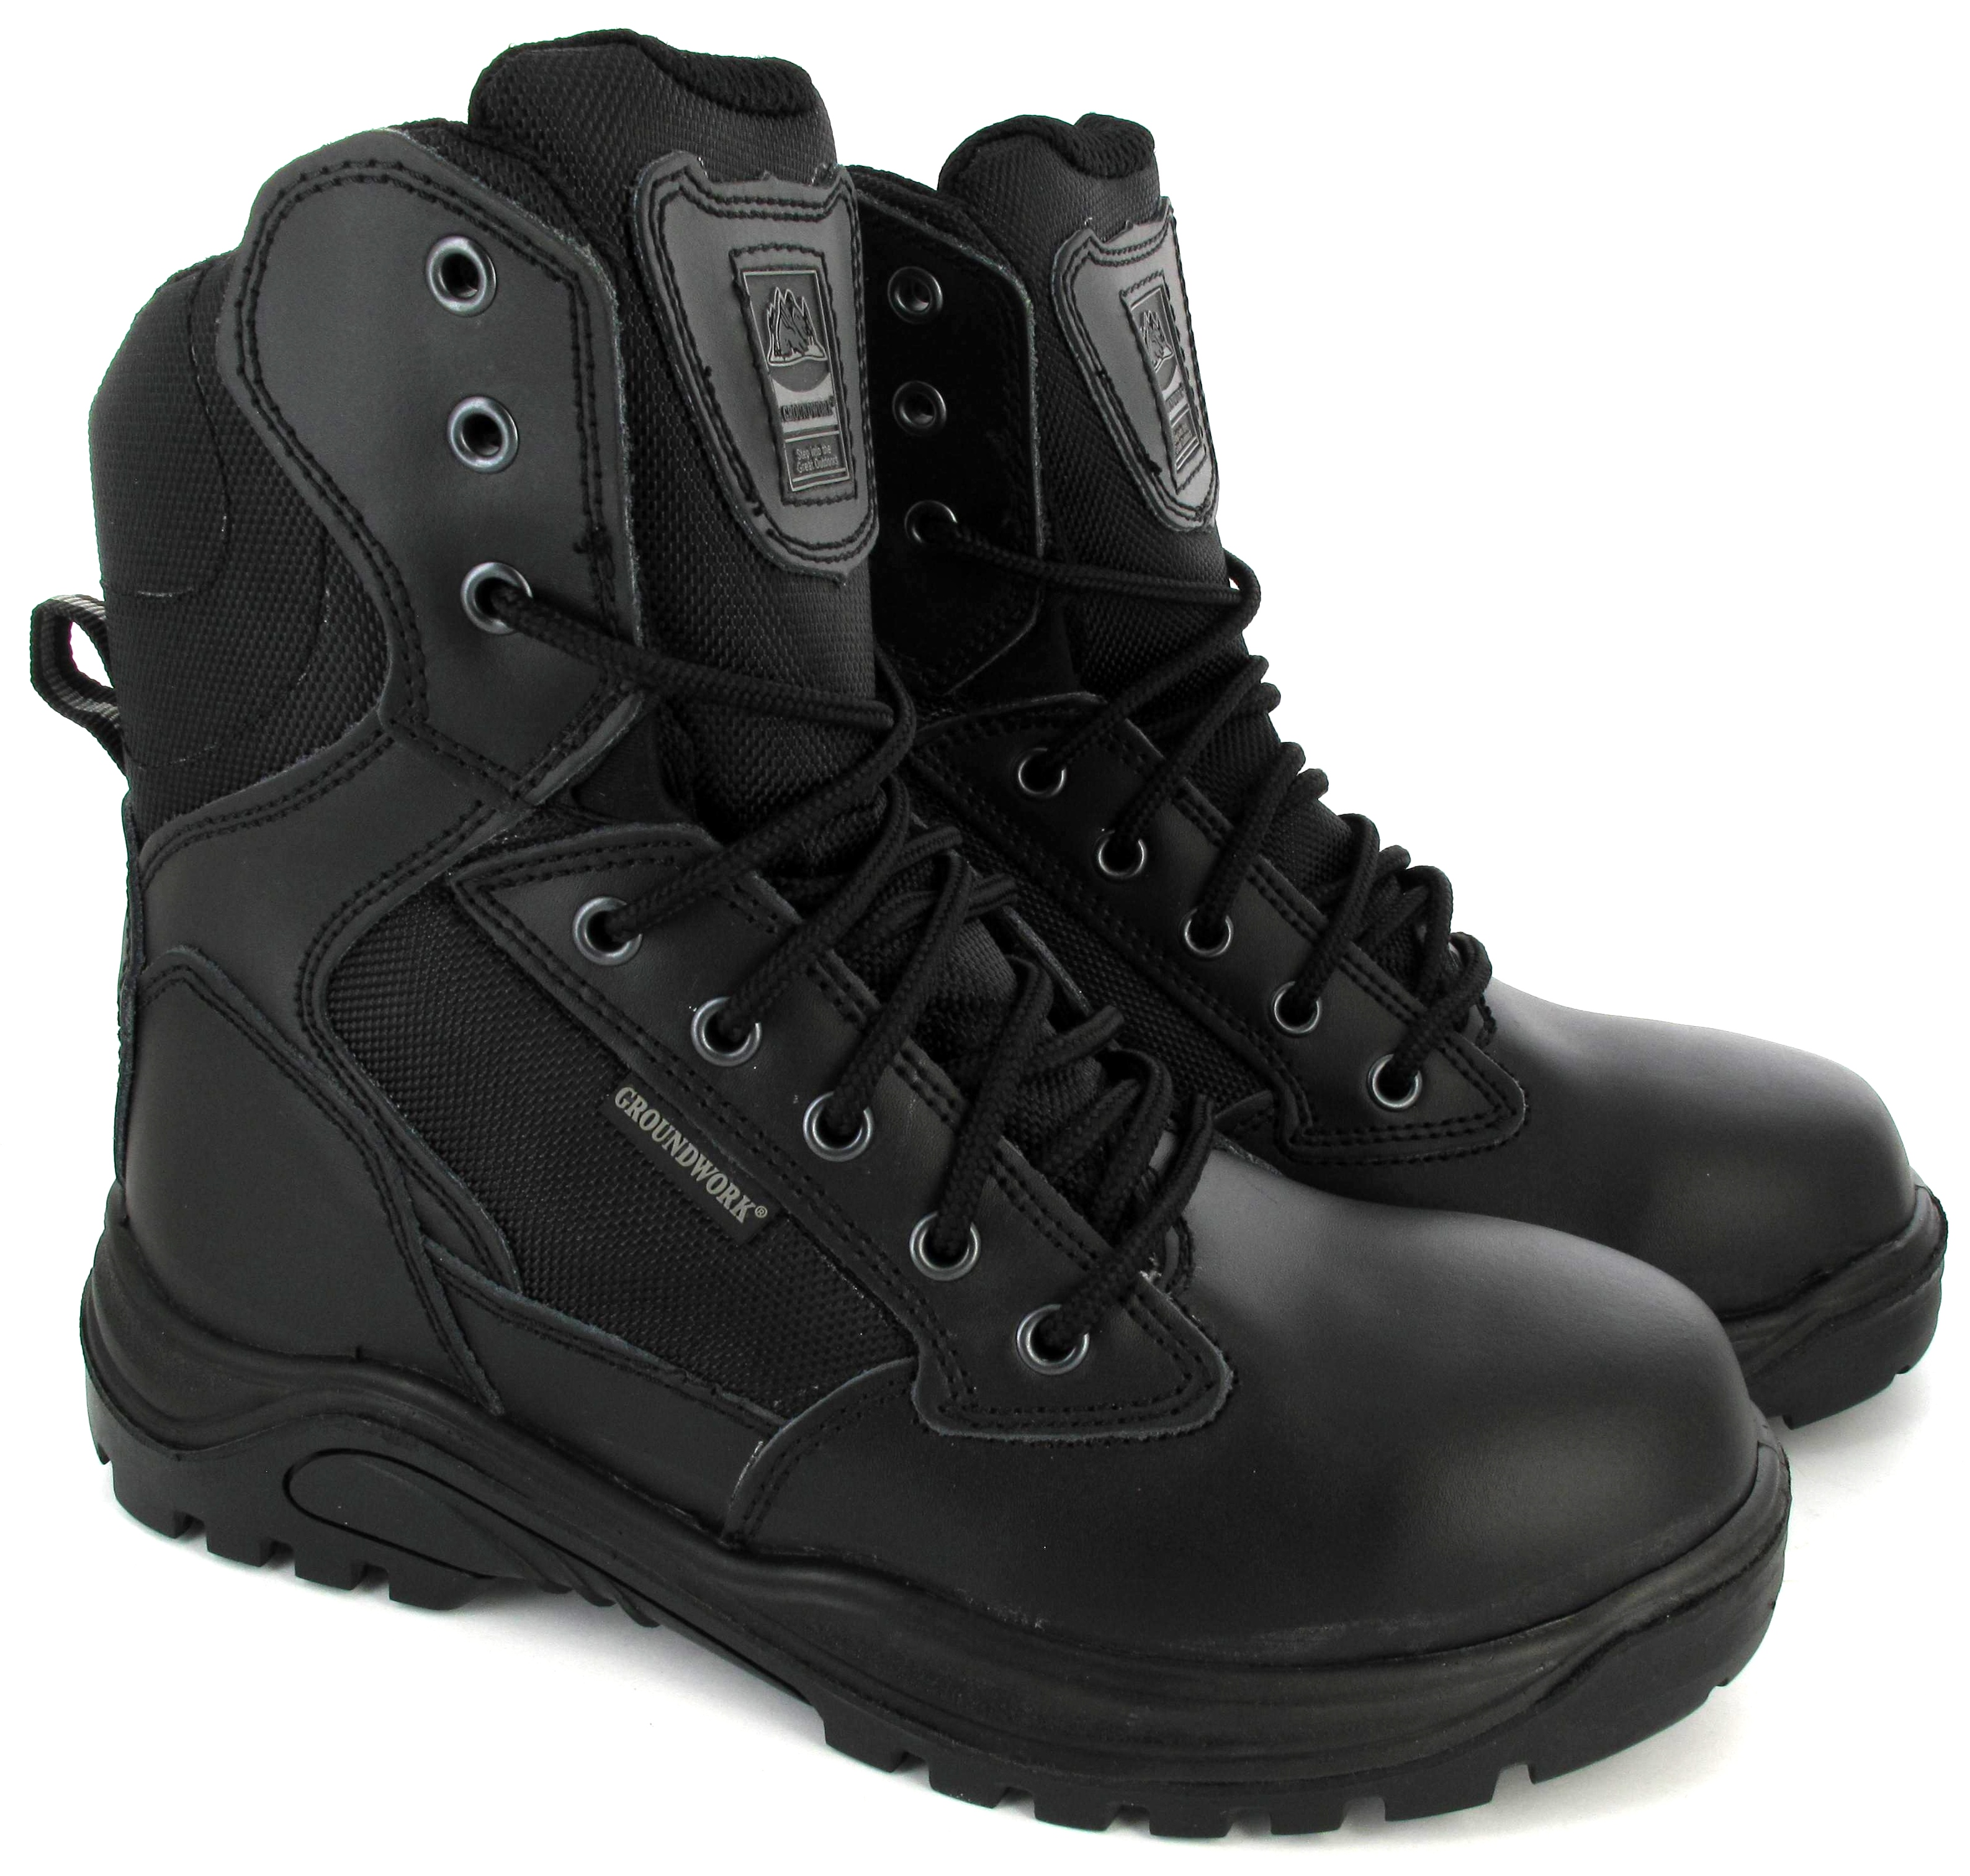 MENS-ARMY-MILITAR-STEEL-TOE-SAFETY-COMBAT-POLICE-COMBAT-BOOTS-UK-SIZE-6-12-NEW